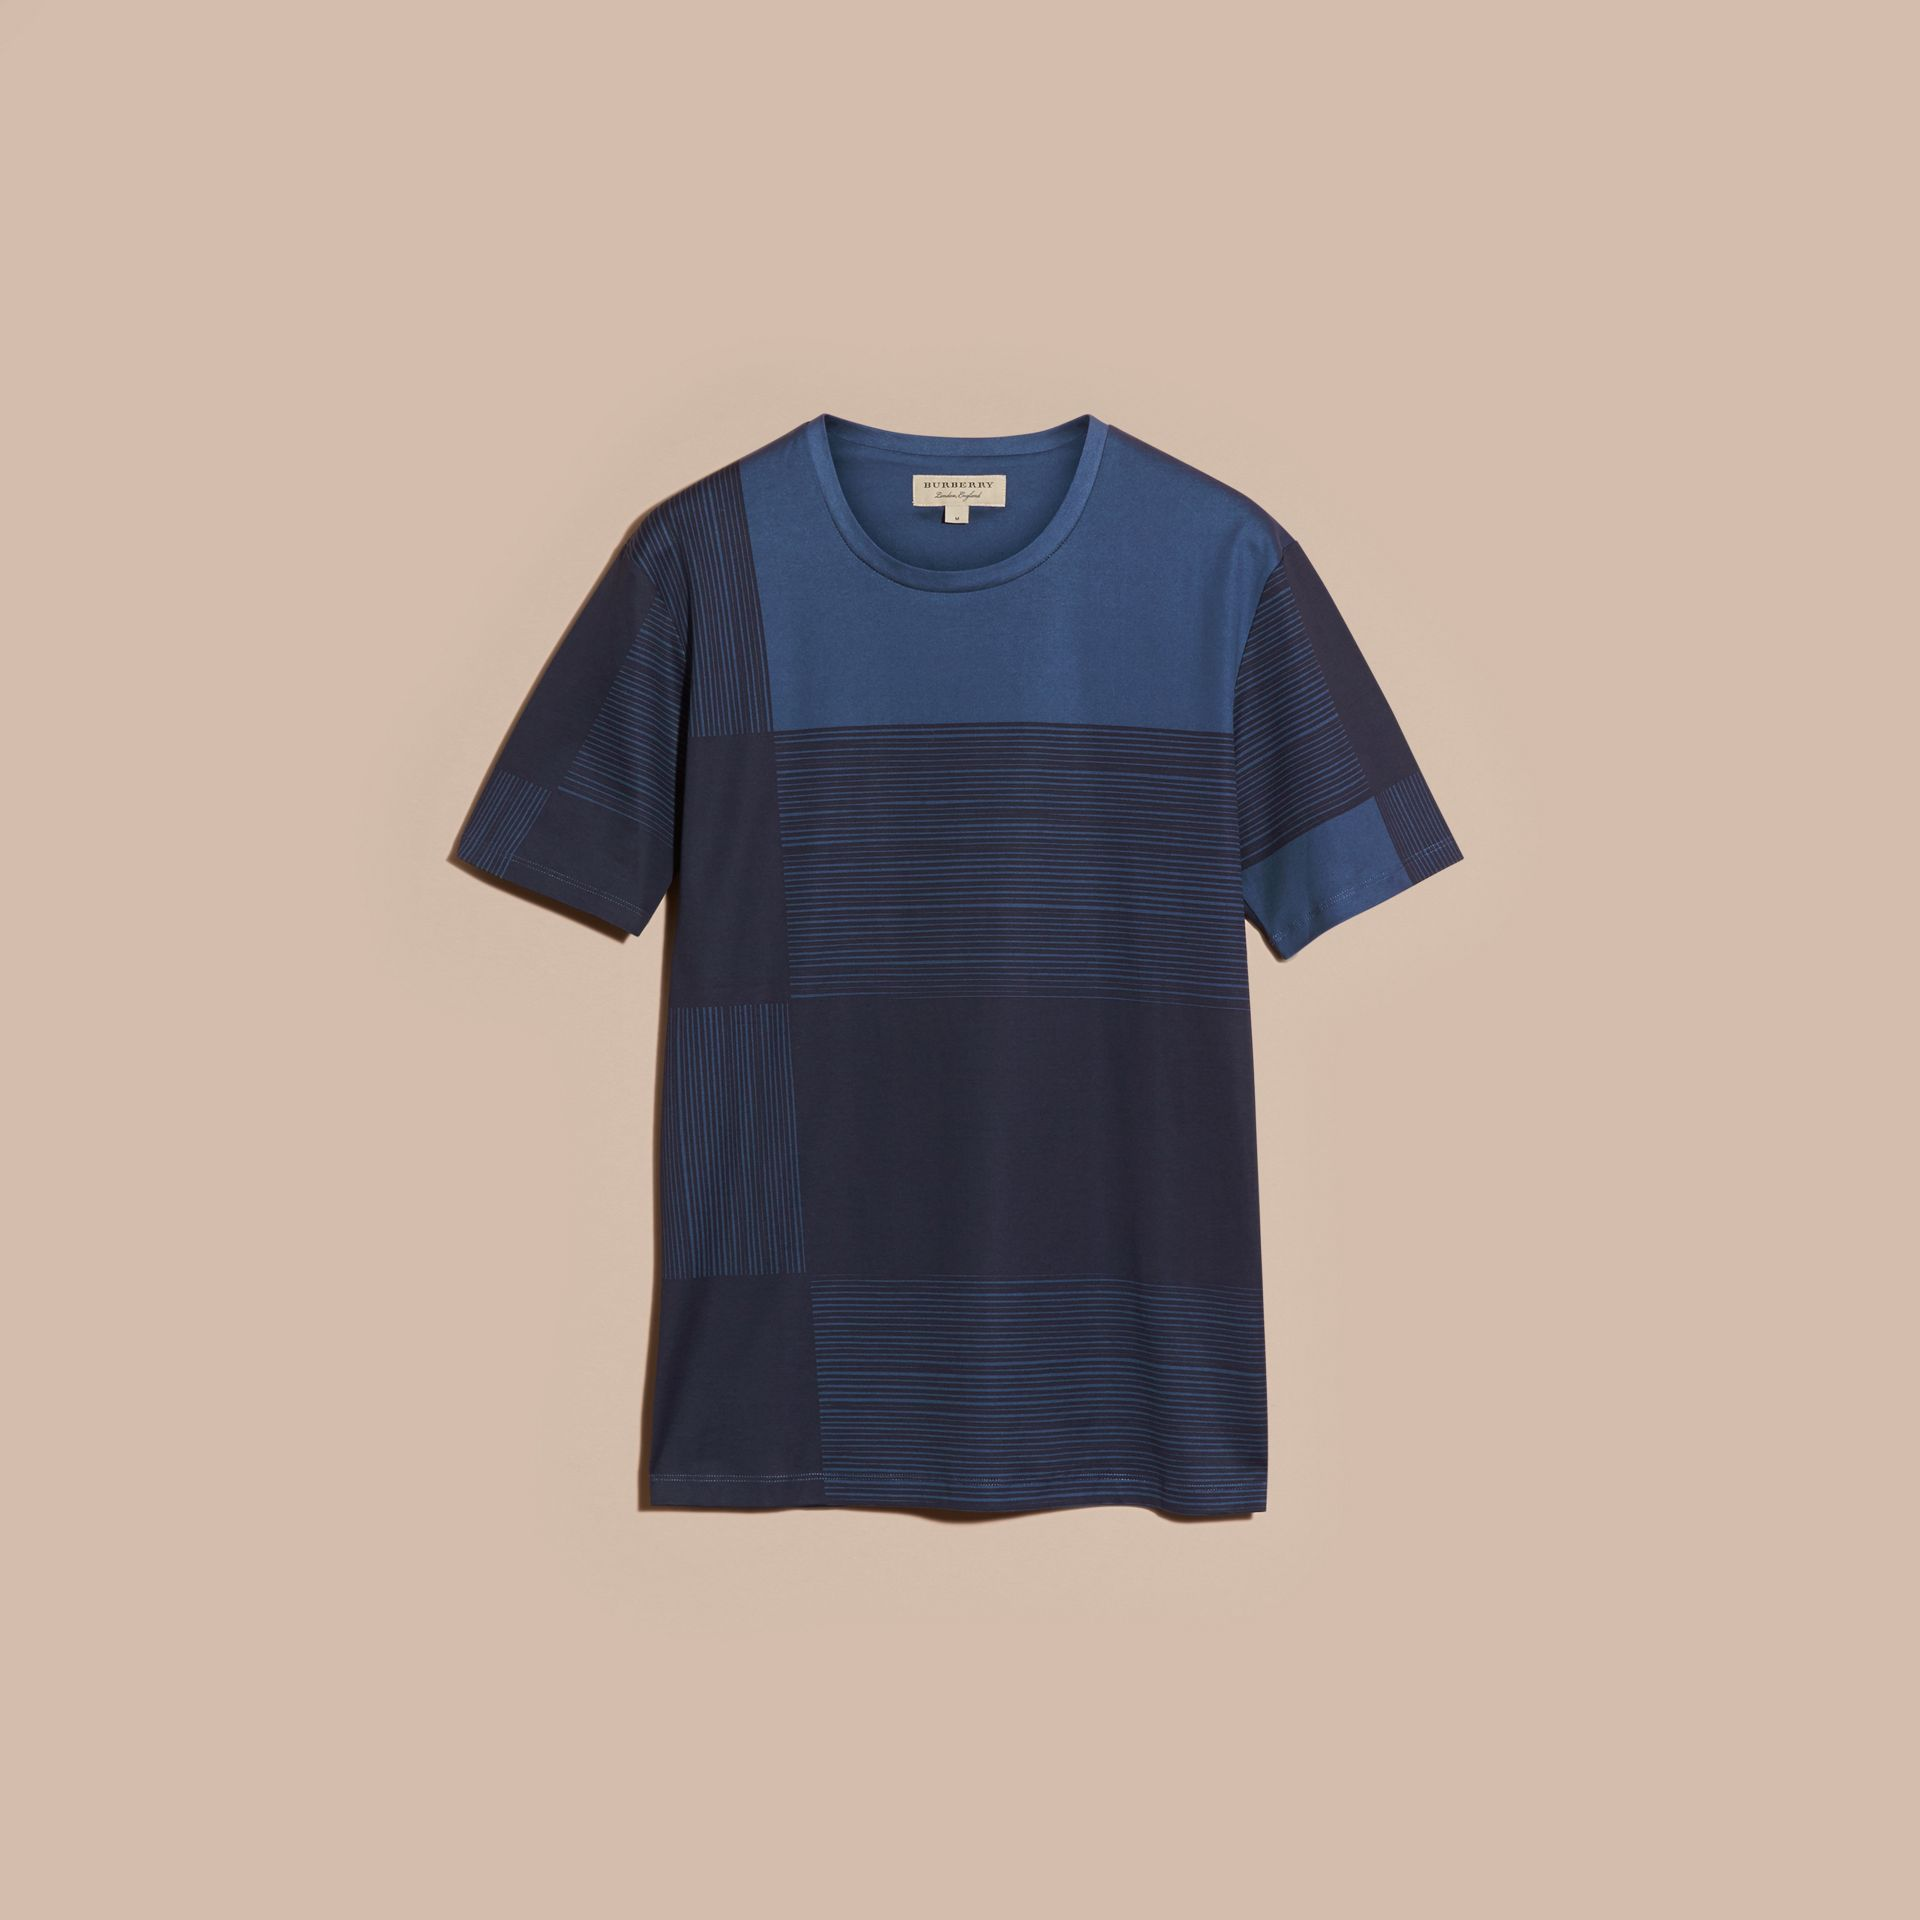 Navy Check Print Cotton T-shirt Navy - gallery image 4